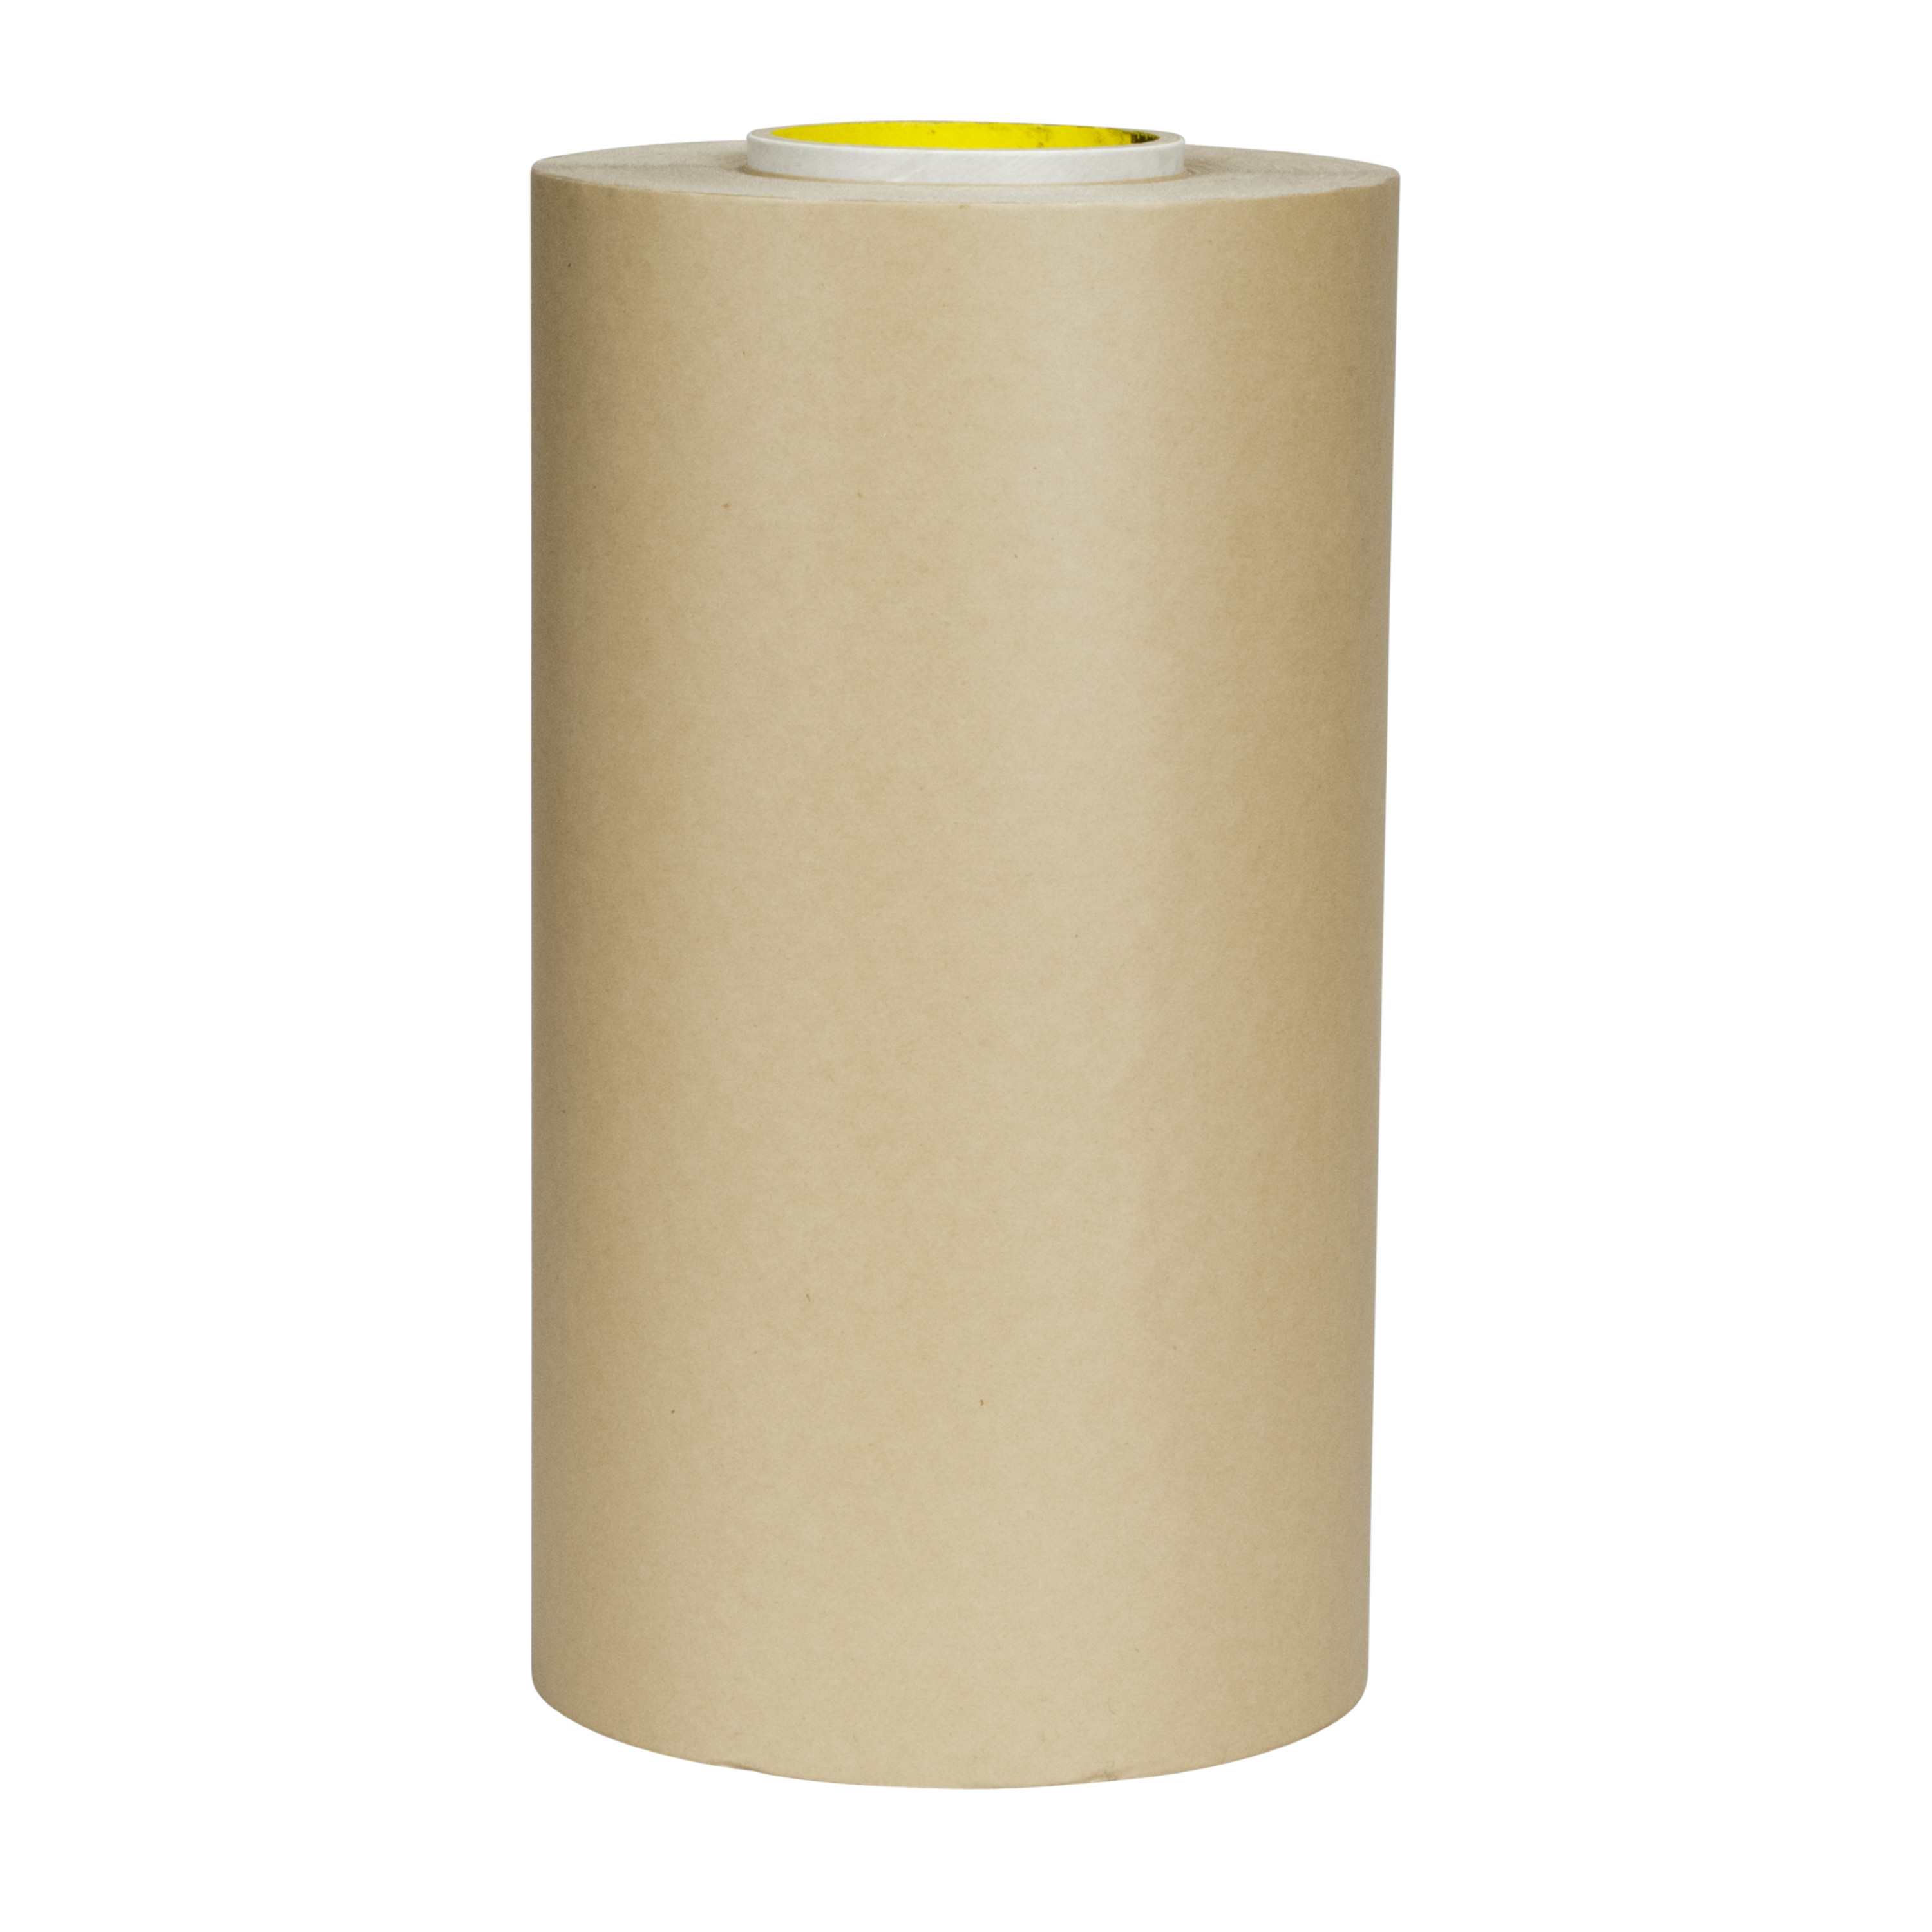 3M™ Adhesive Transfer Tape 6038PC, Clear, 8 mil, Roll, Config